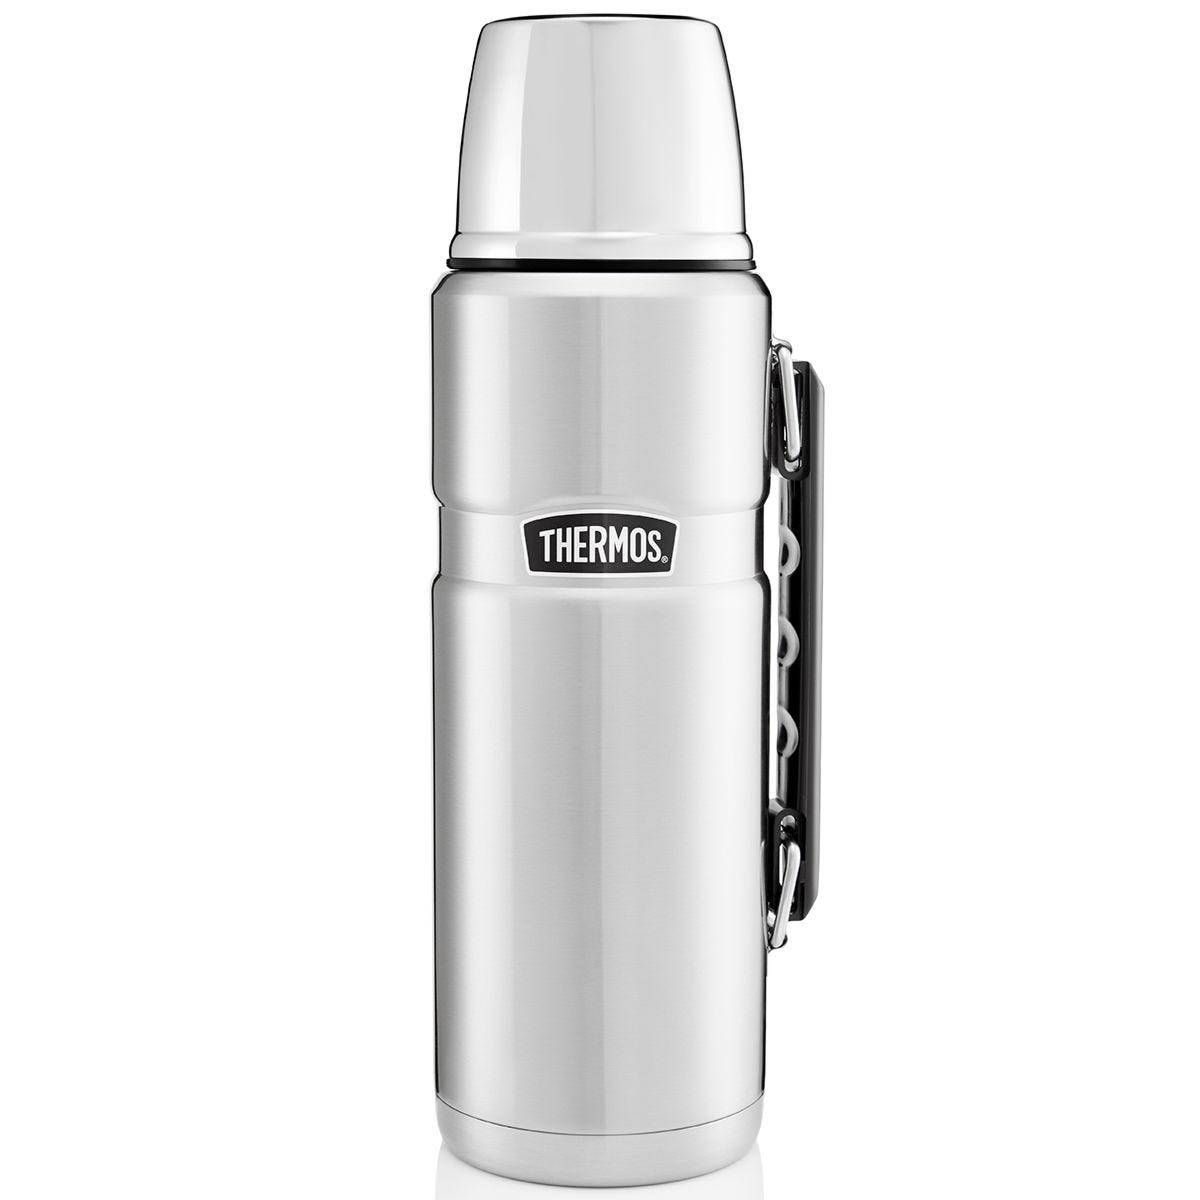 Thermos Stainless King Flask 1.2L  - Stainless Steel